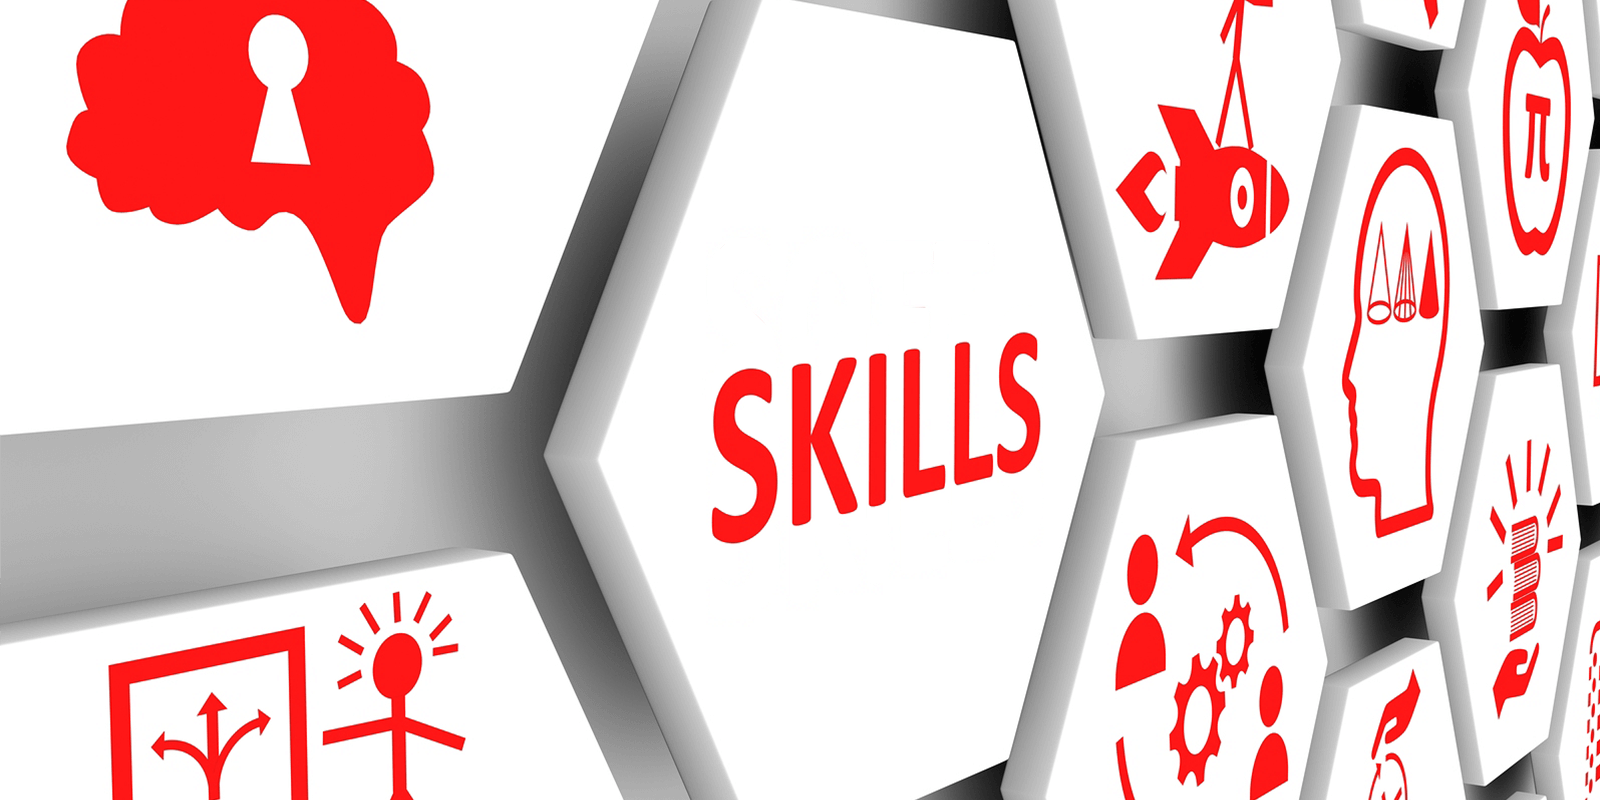 For Ed Cast, an Open Skills Builder Users, IYS Skills Ontology Can Be Added Value for Complex Skills Combination